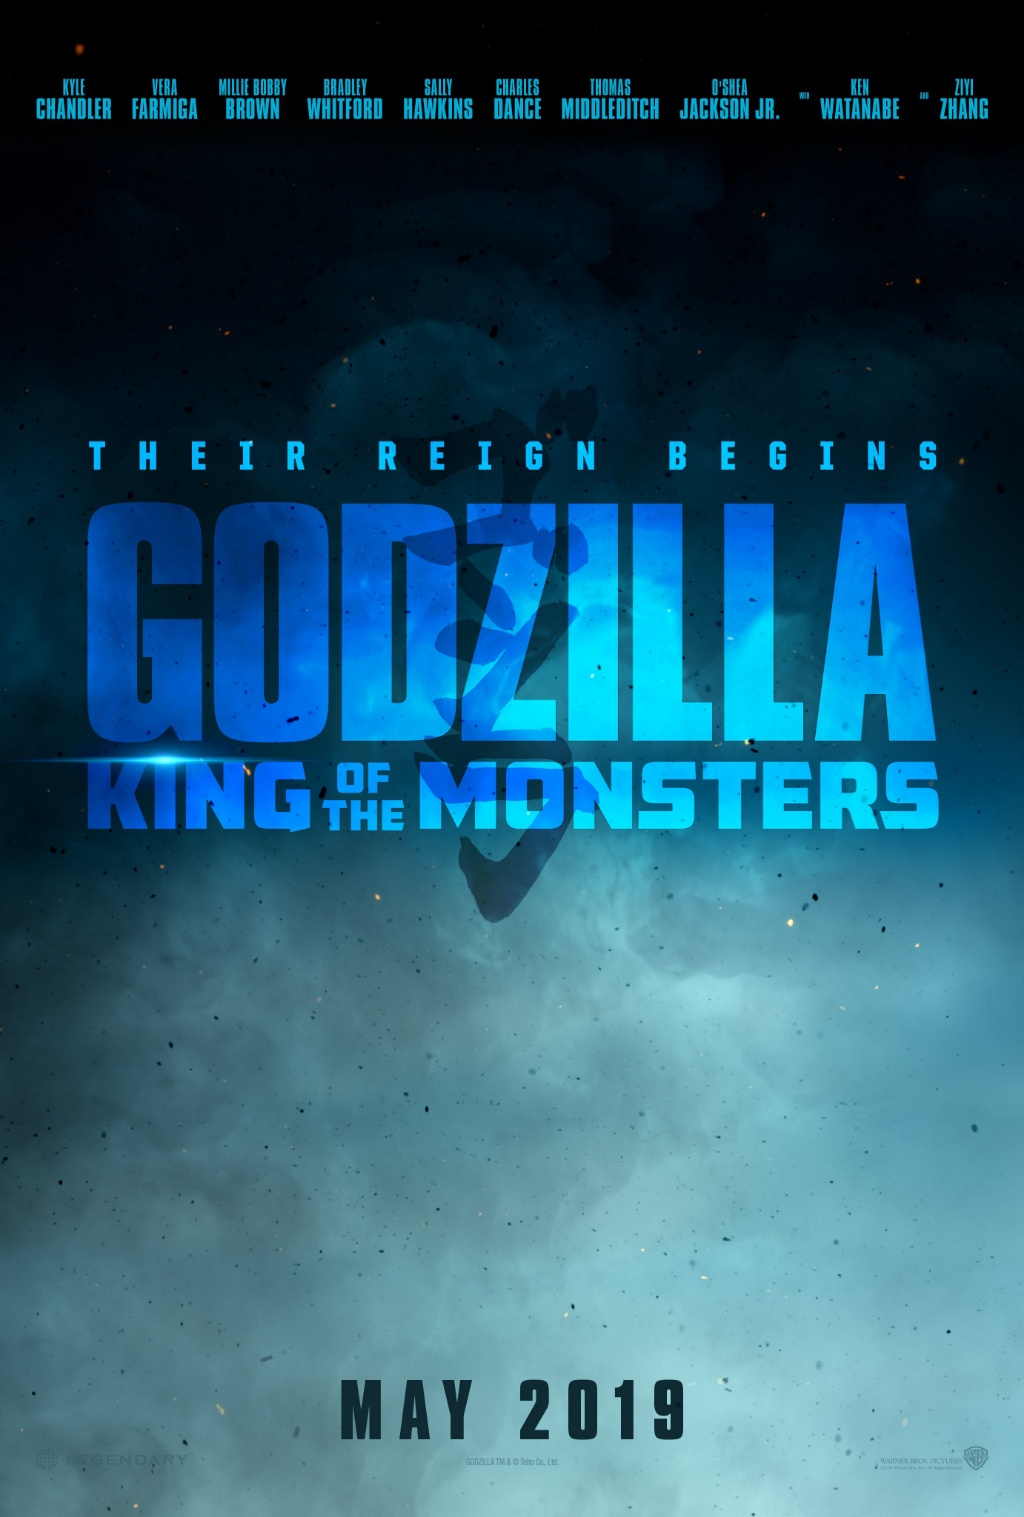 Godzilla: King of the Monsters (2019) movie poster